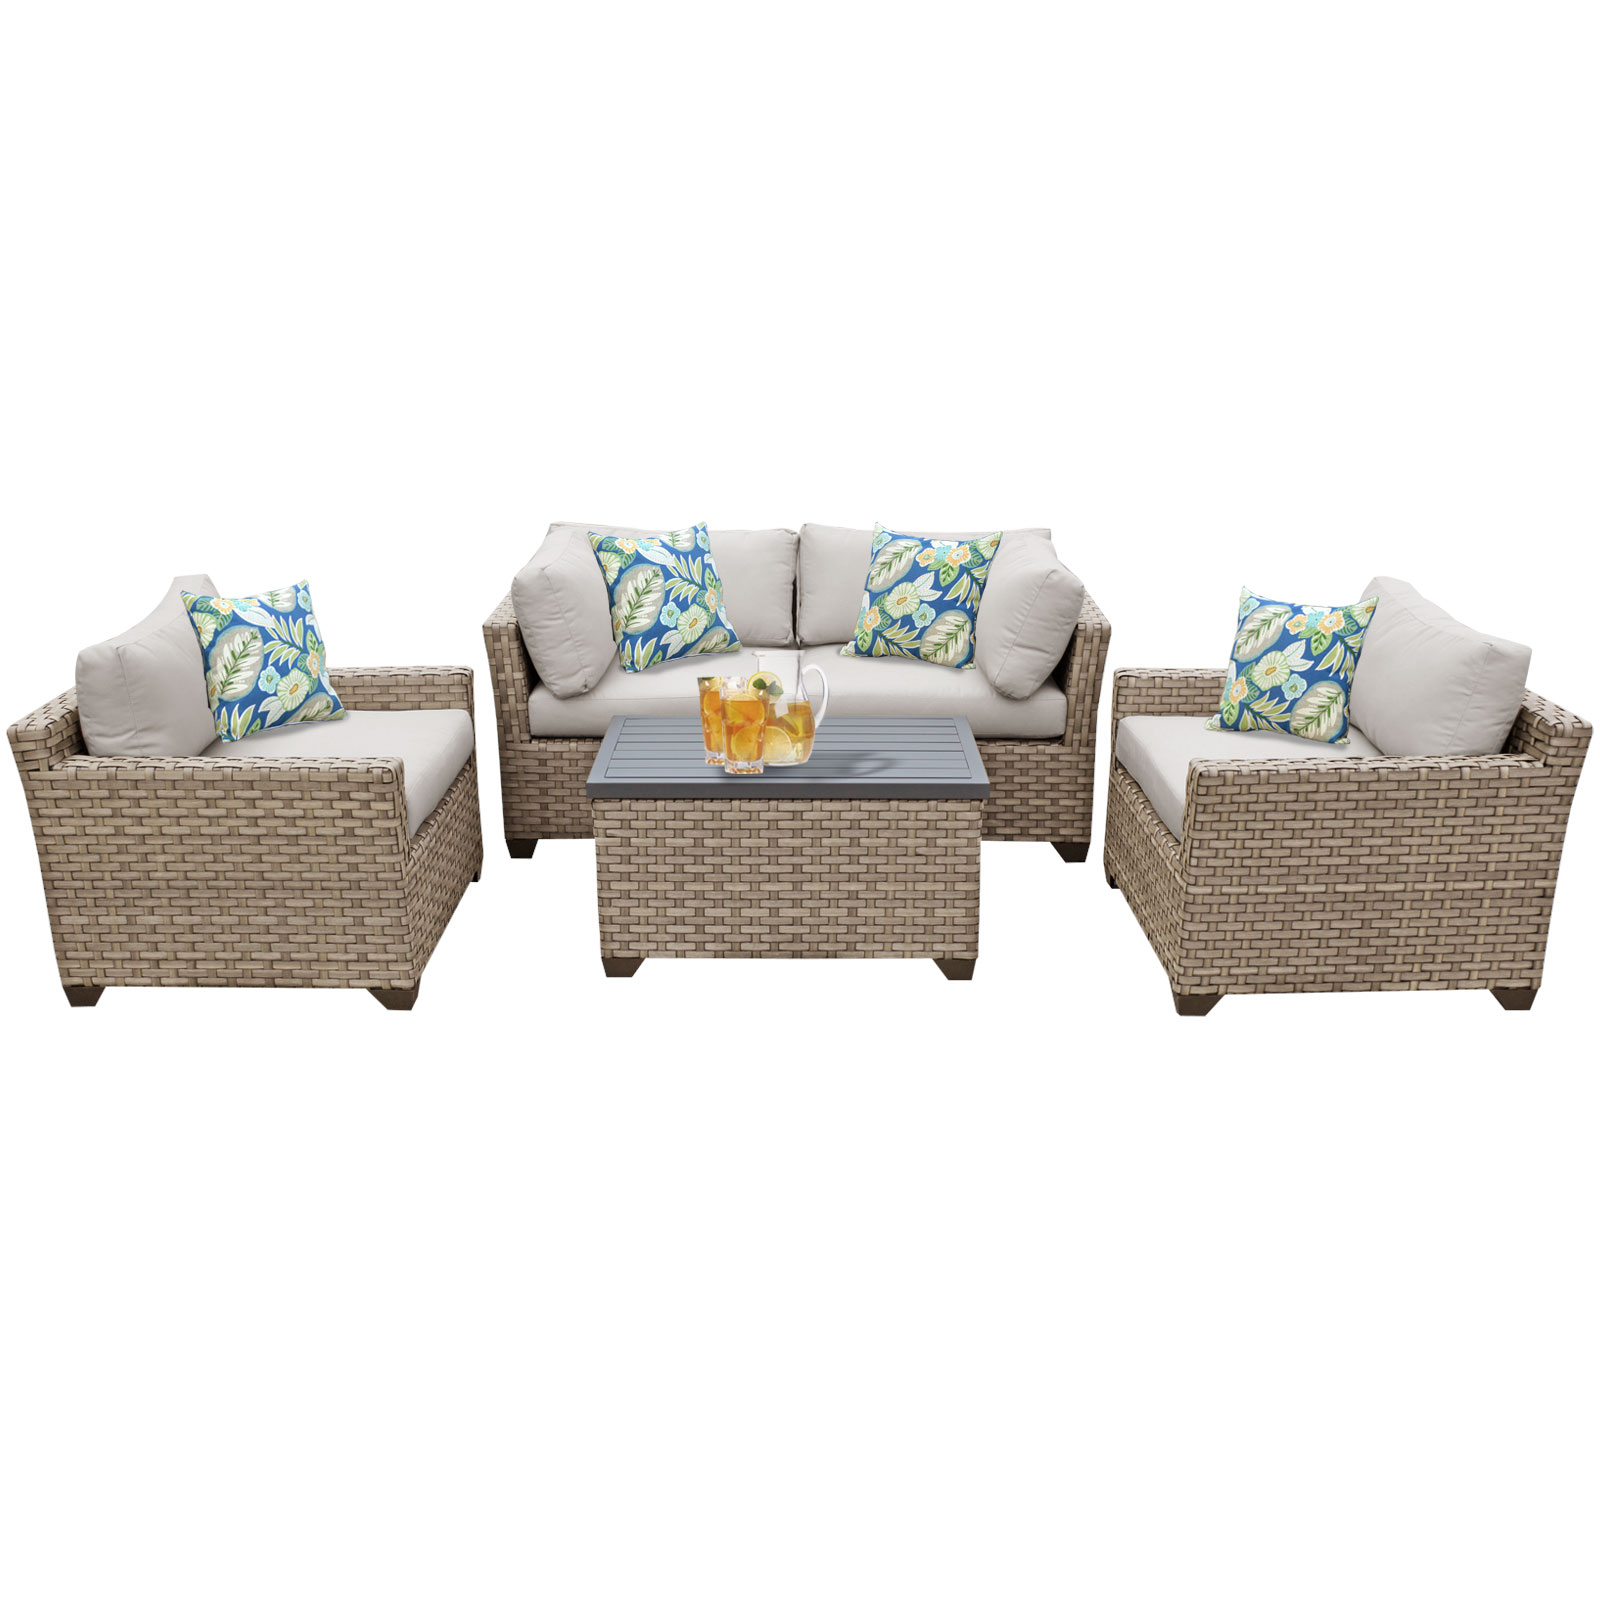 Hampton 5 Piece Outdoor Wicker Patio Furniture Set 05b